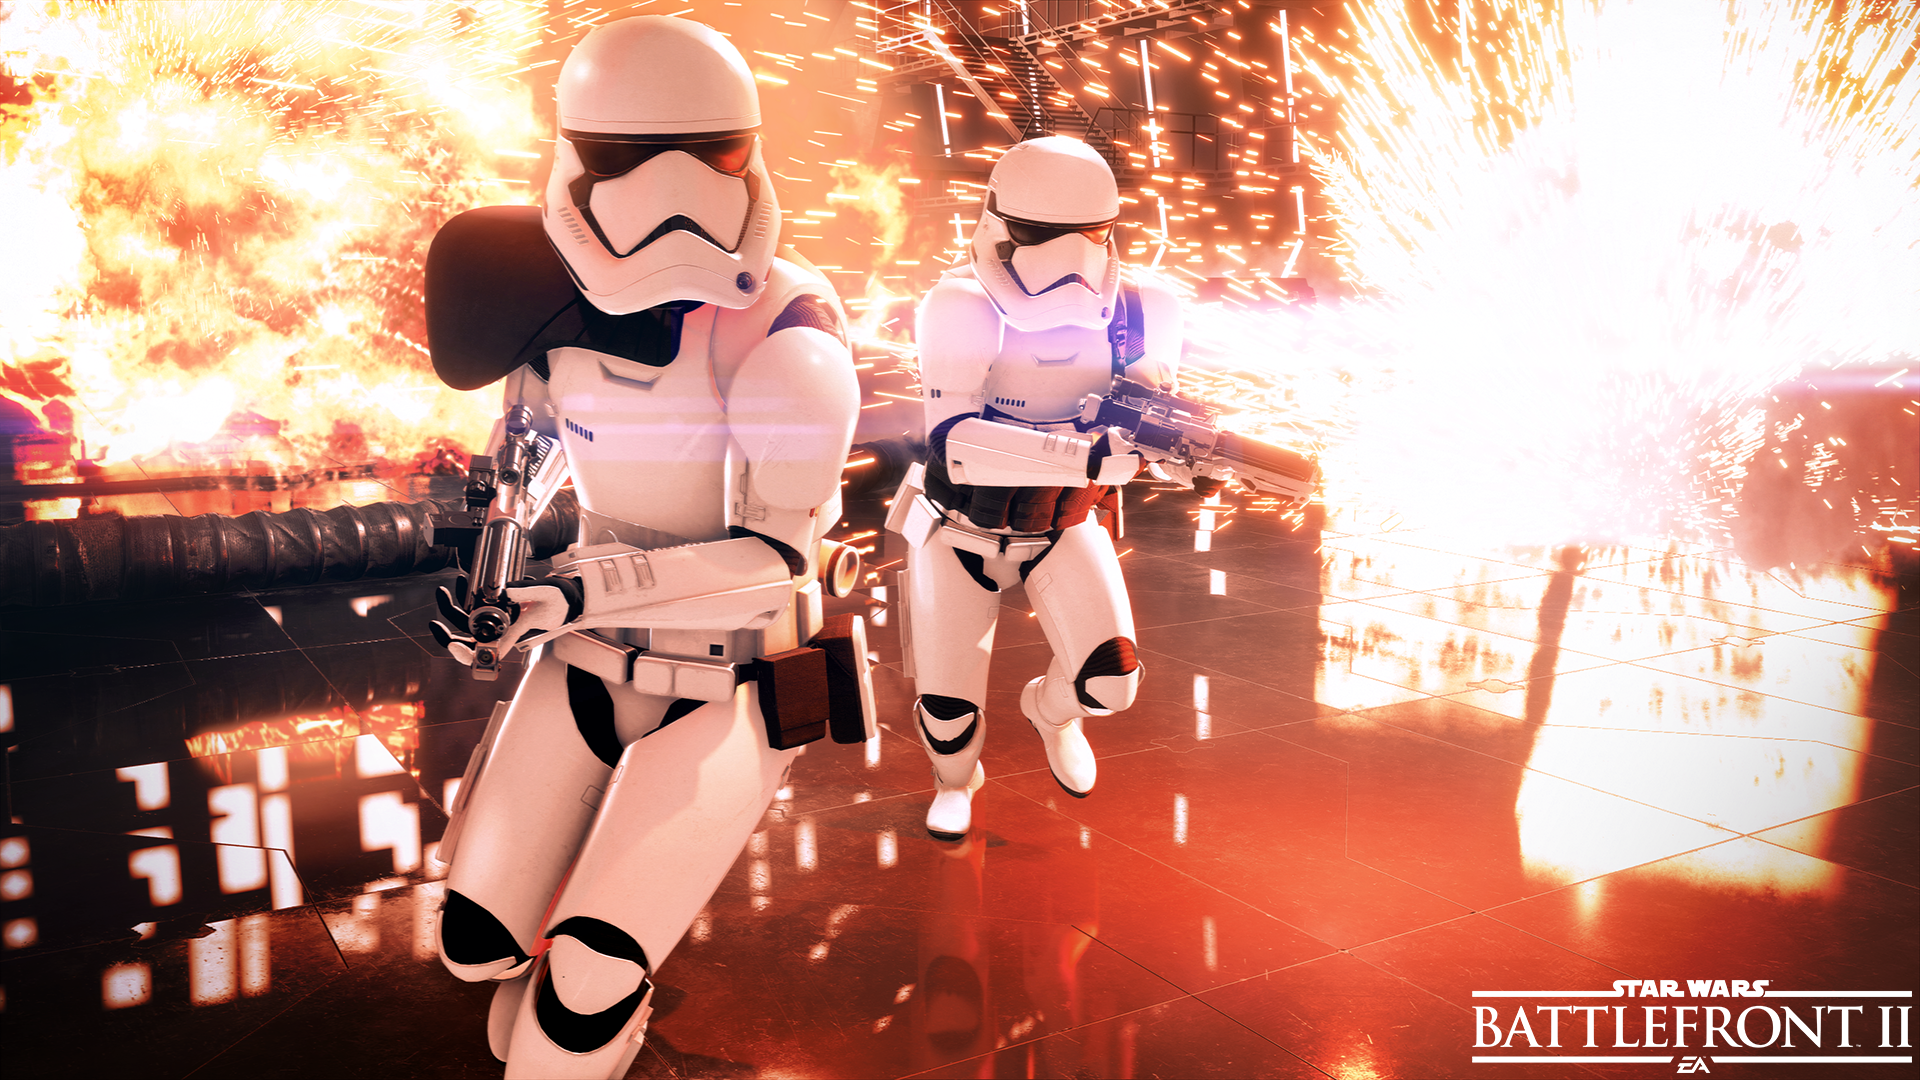 Star Wars Battlefront 2 february update